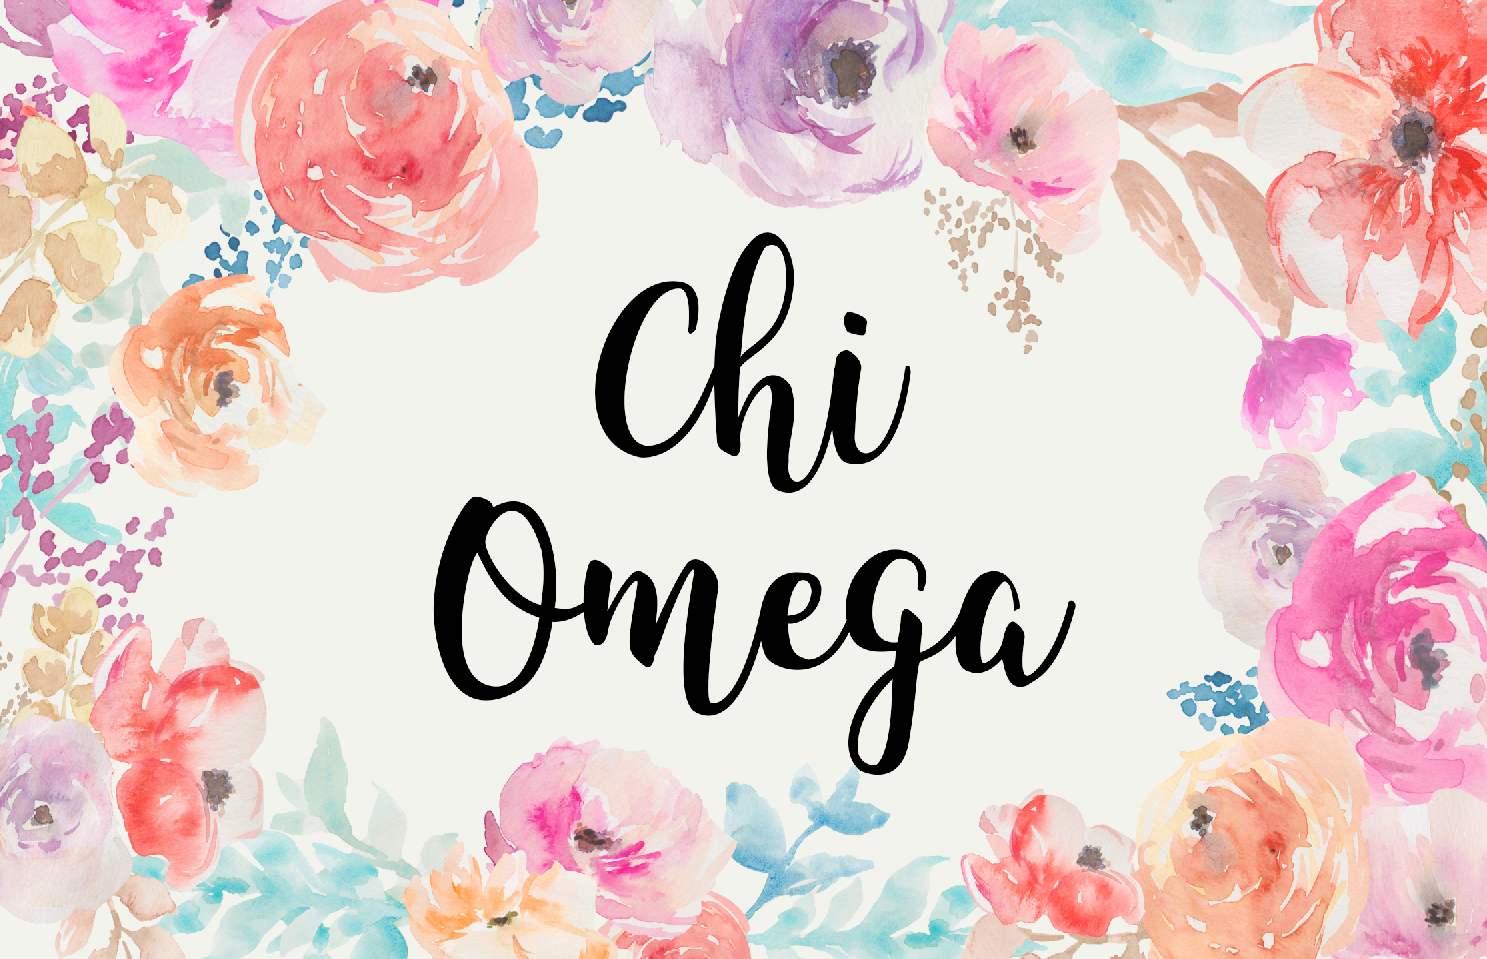 Chi Omega New Floral 3' x 5' Flag